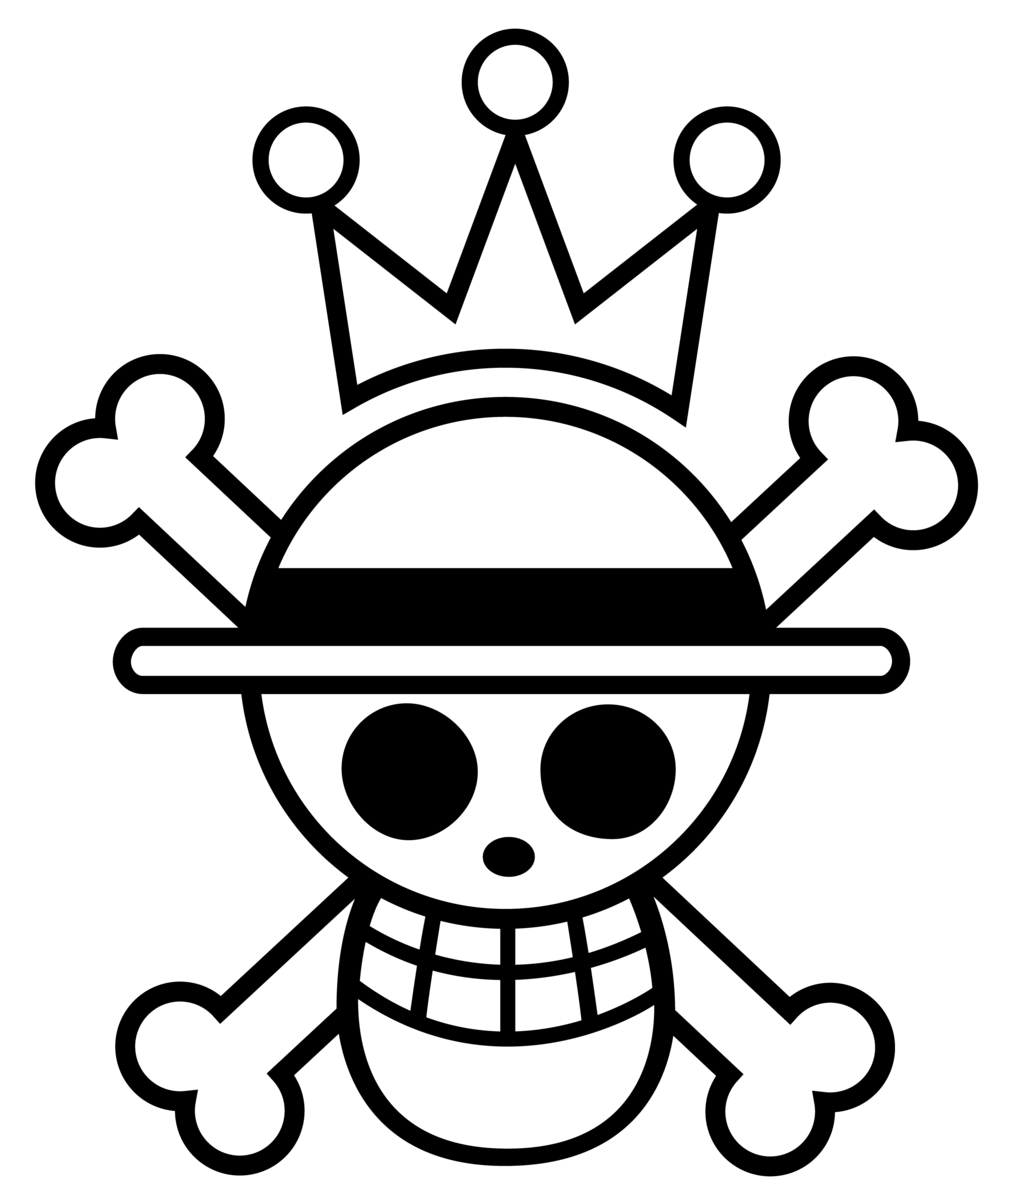 D20 clipart black and white. Pirate flag drawing at